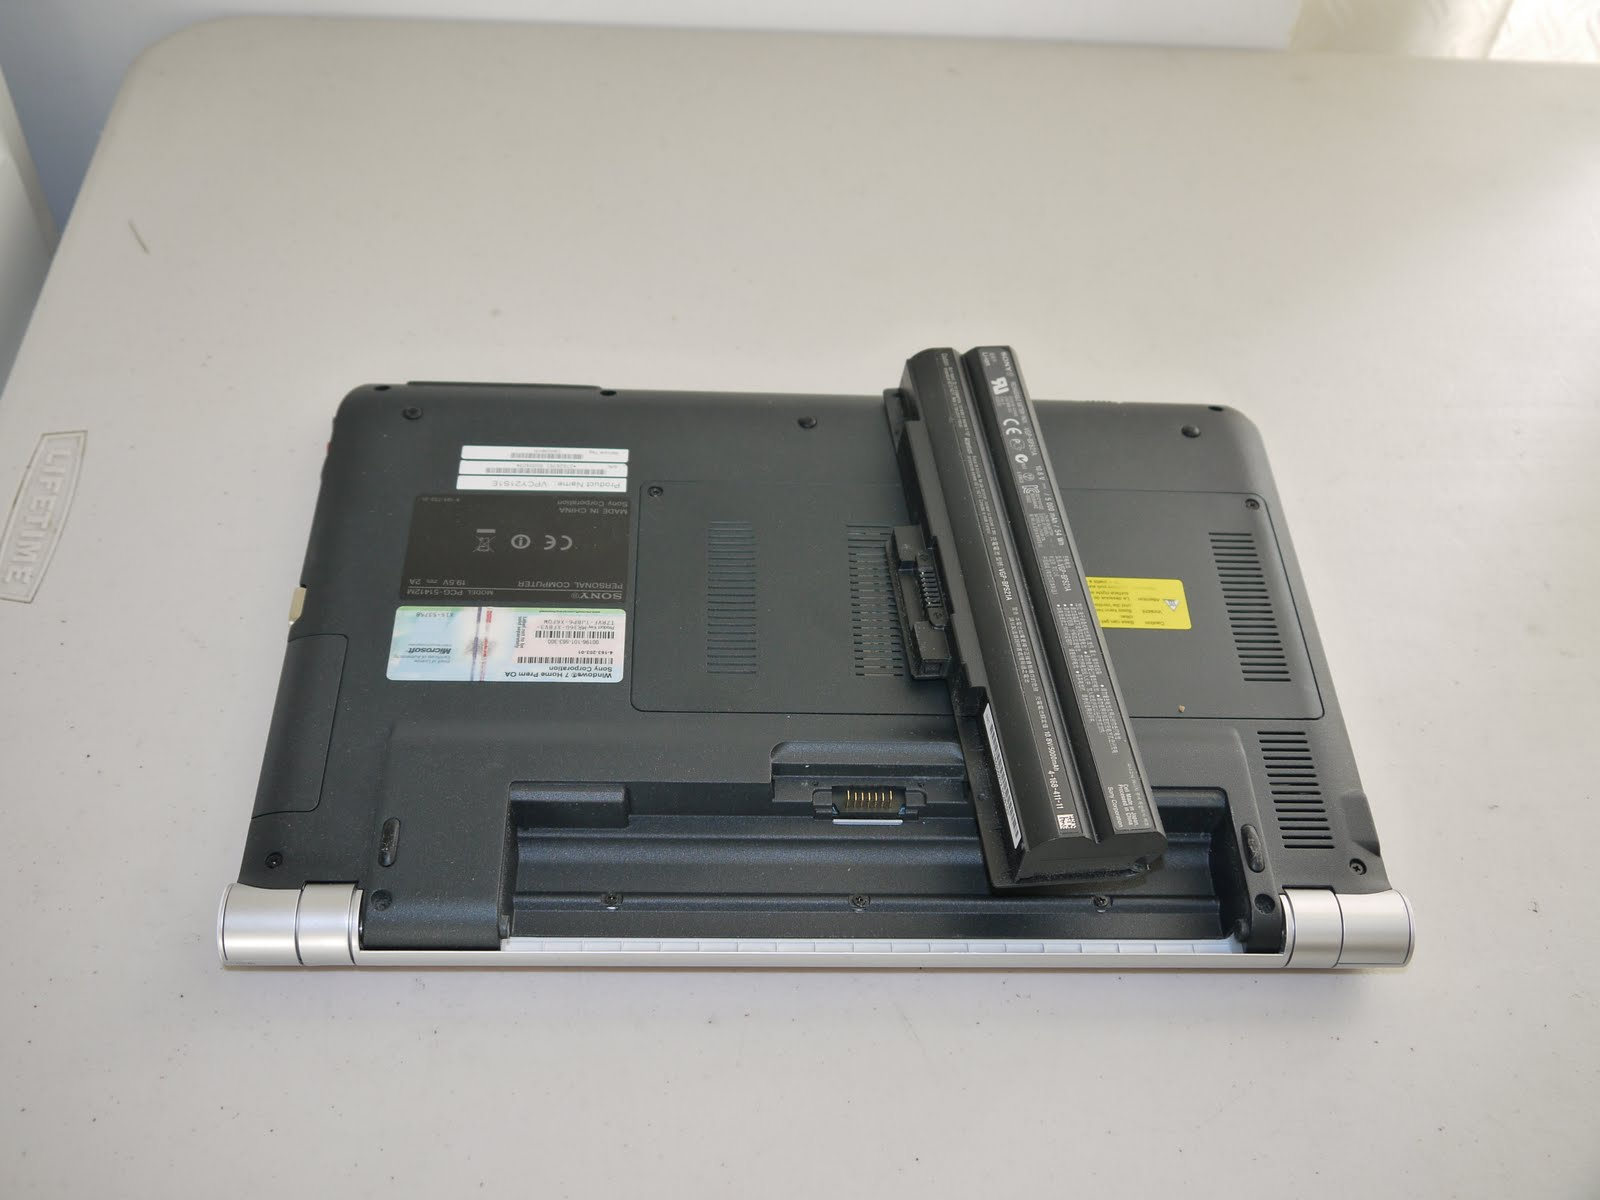 Sony VAIO PCG-4J1L Hard Drive/Memory/Power Replacement Parts